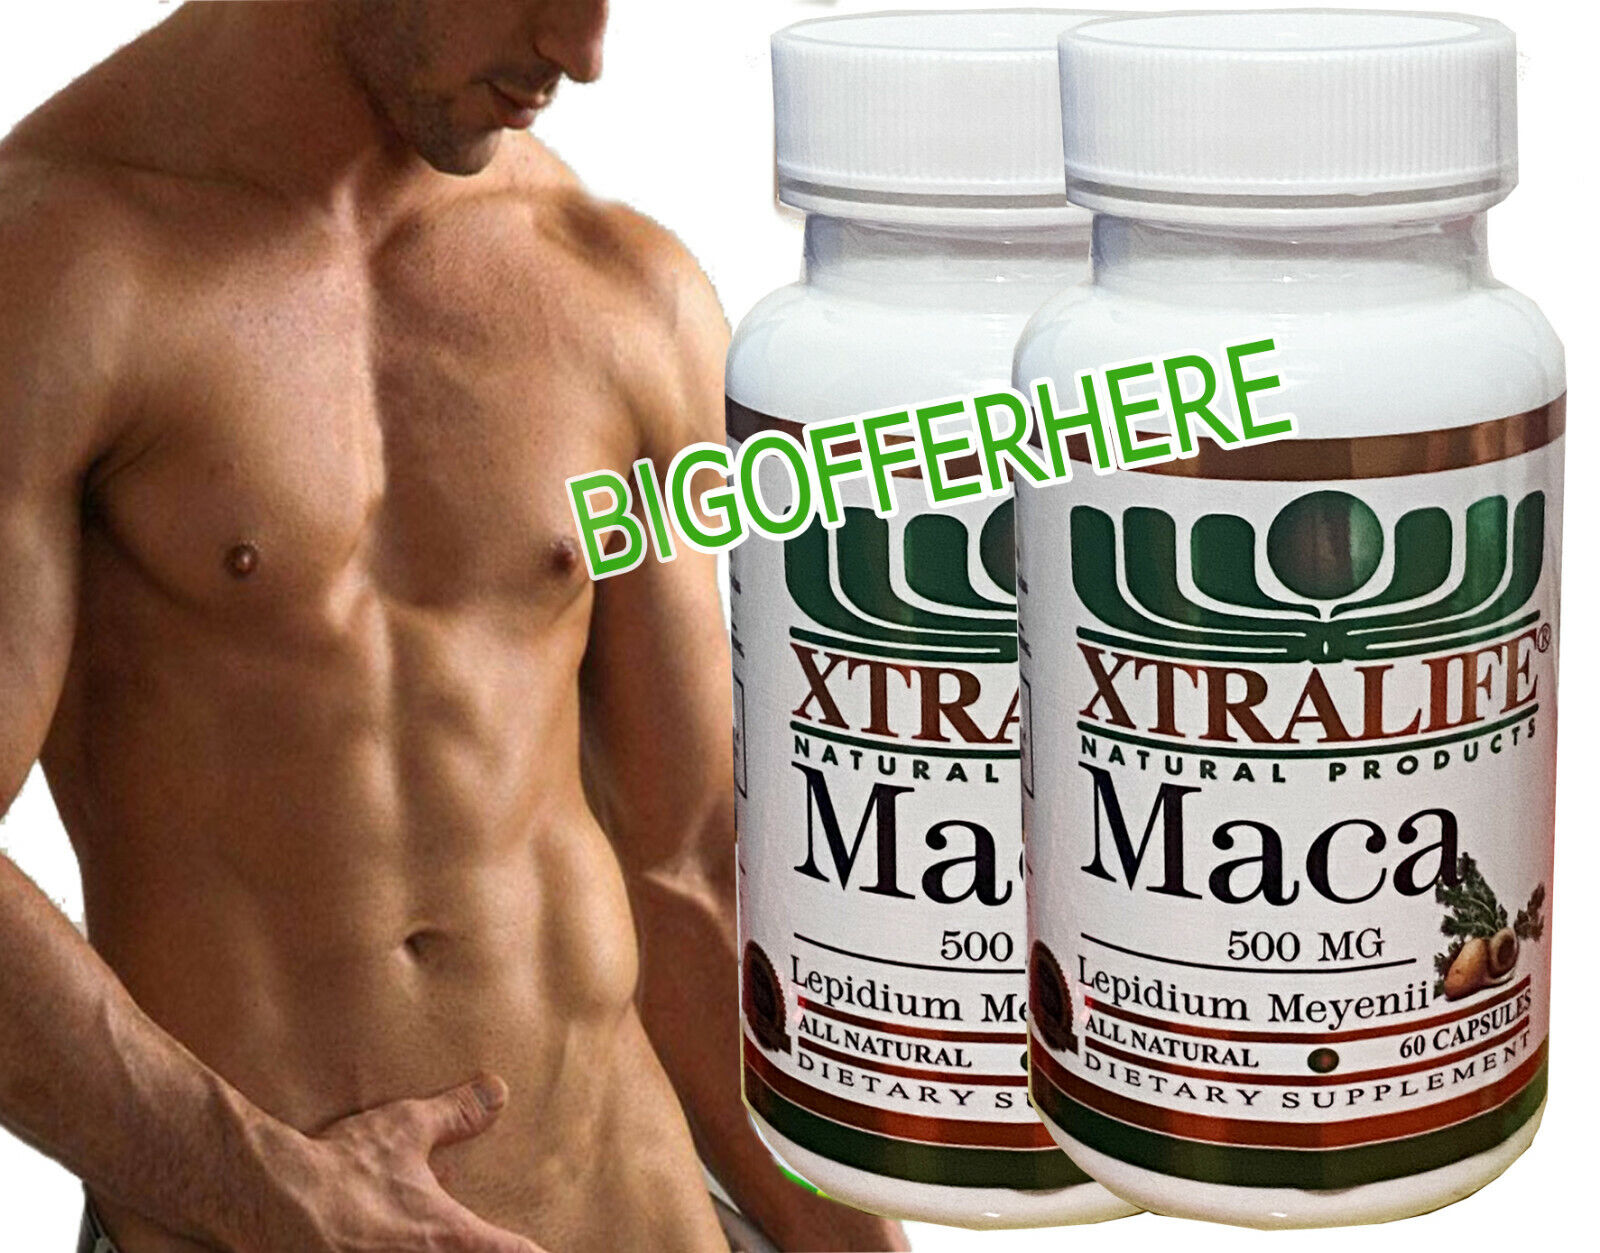 maca 1000 mg men fertility natural aphrodisiac